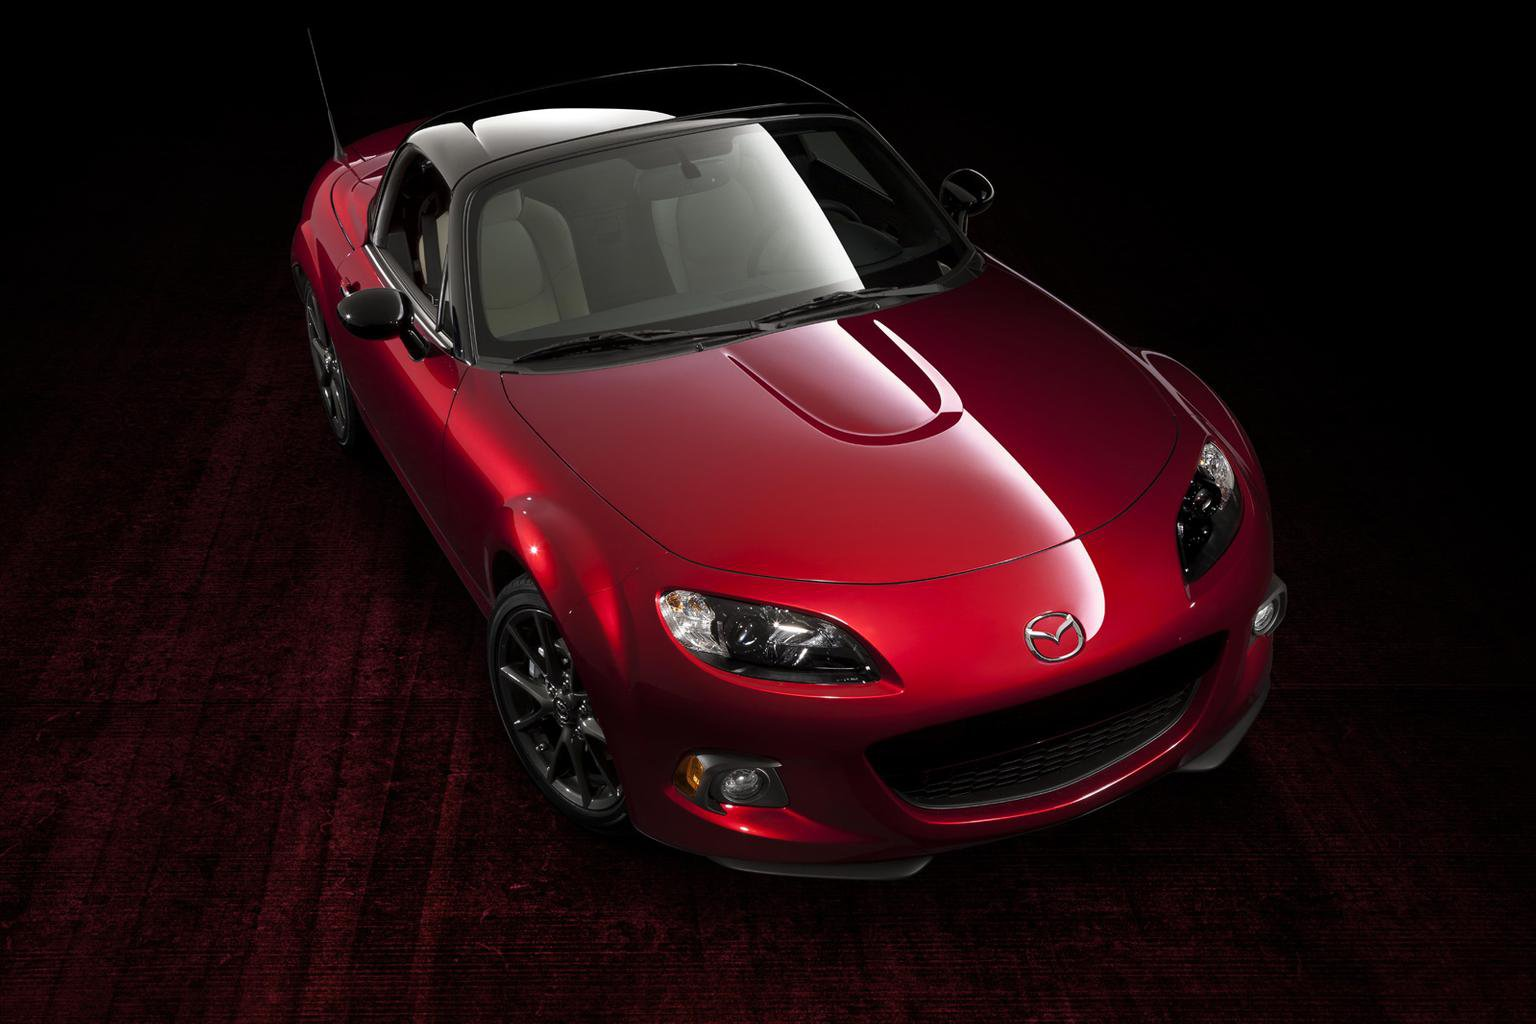 News round-up: new Mazda MX-5 chassis revealed, plus Toyota fuel cell car coming to Europe